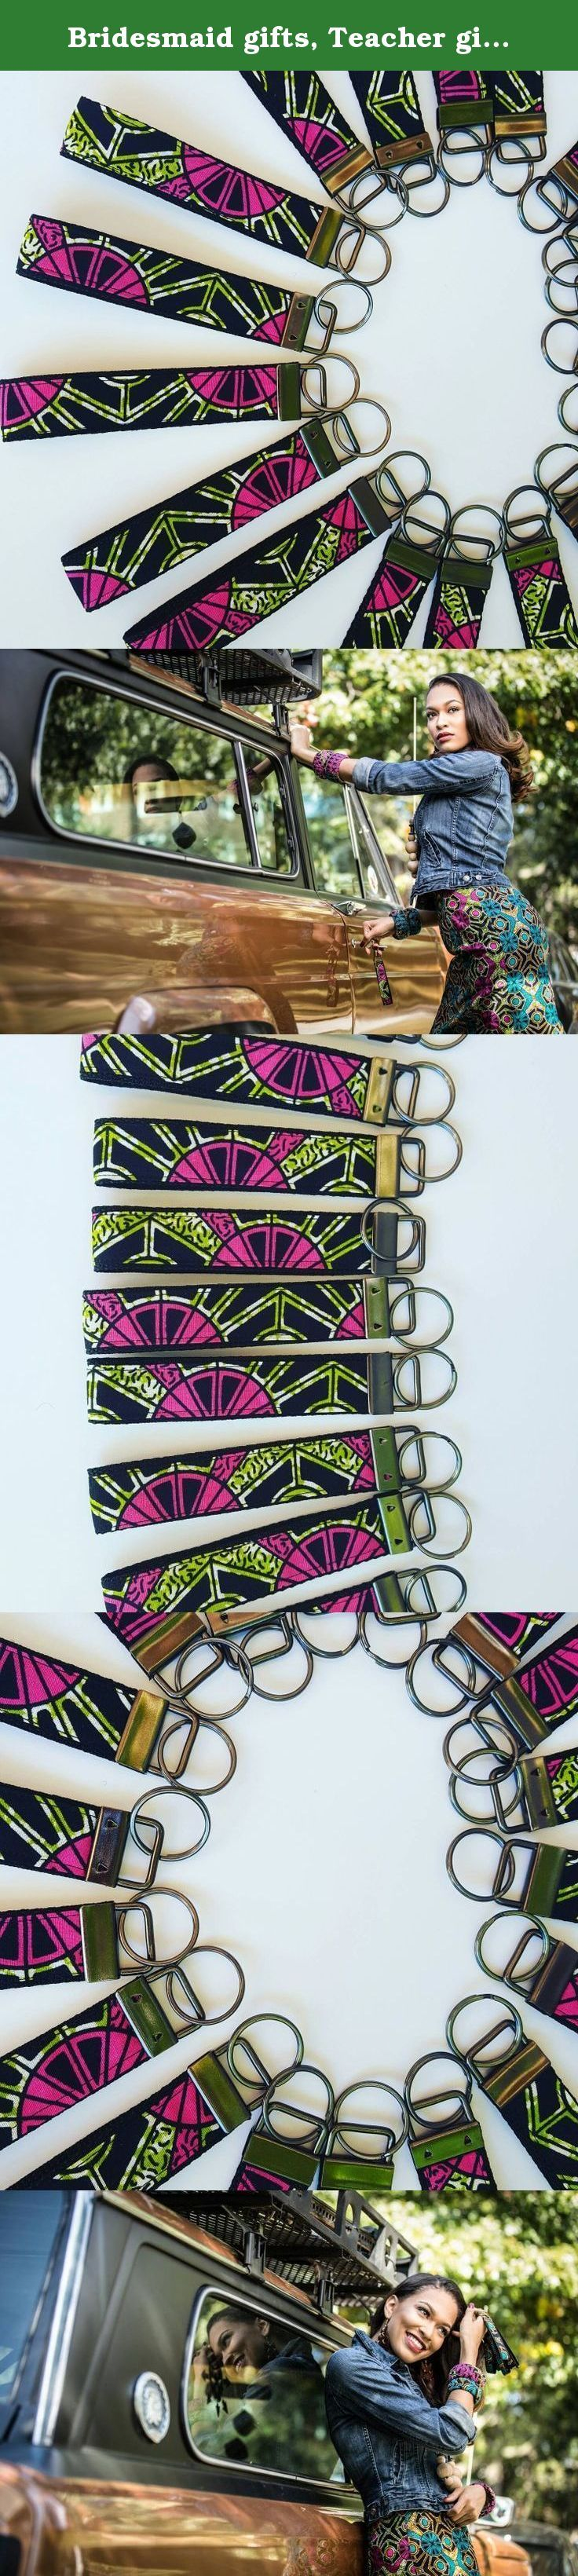 """Bridesmaid gifts, Teacher gifts, Shower gifts, Party gifts, Co-worker gifts, Key fobs, Key chains, Key holders,Employee gifts, Fabric key chains, Bridal party gifts. Key fob, Bridesmaid gifts, Co-Worker gifts, Key fob wristlets *Handmade -- Pattern placement may vary; *Sold individually; *African print fabric + Black polyblend webbing; *Wristlet Size 1"""" wide x 10"""" around (5"""" when lying flat - not including hardware); *Hardware: Antique Brass. A portion of net profits from the sale of…"""